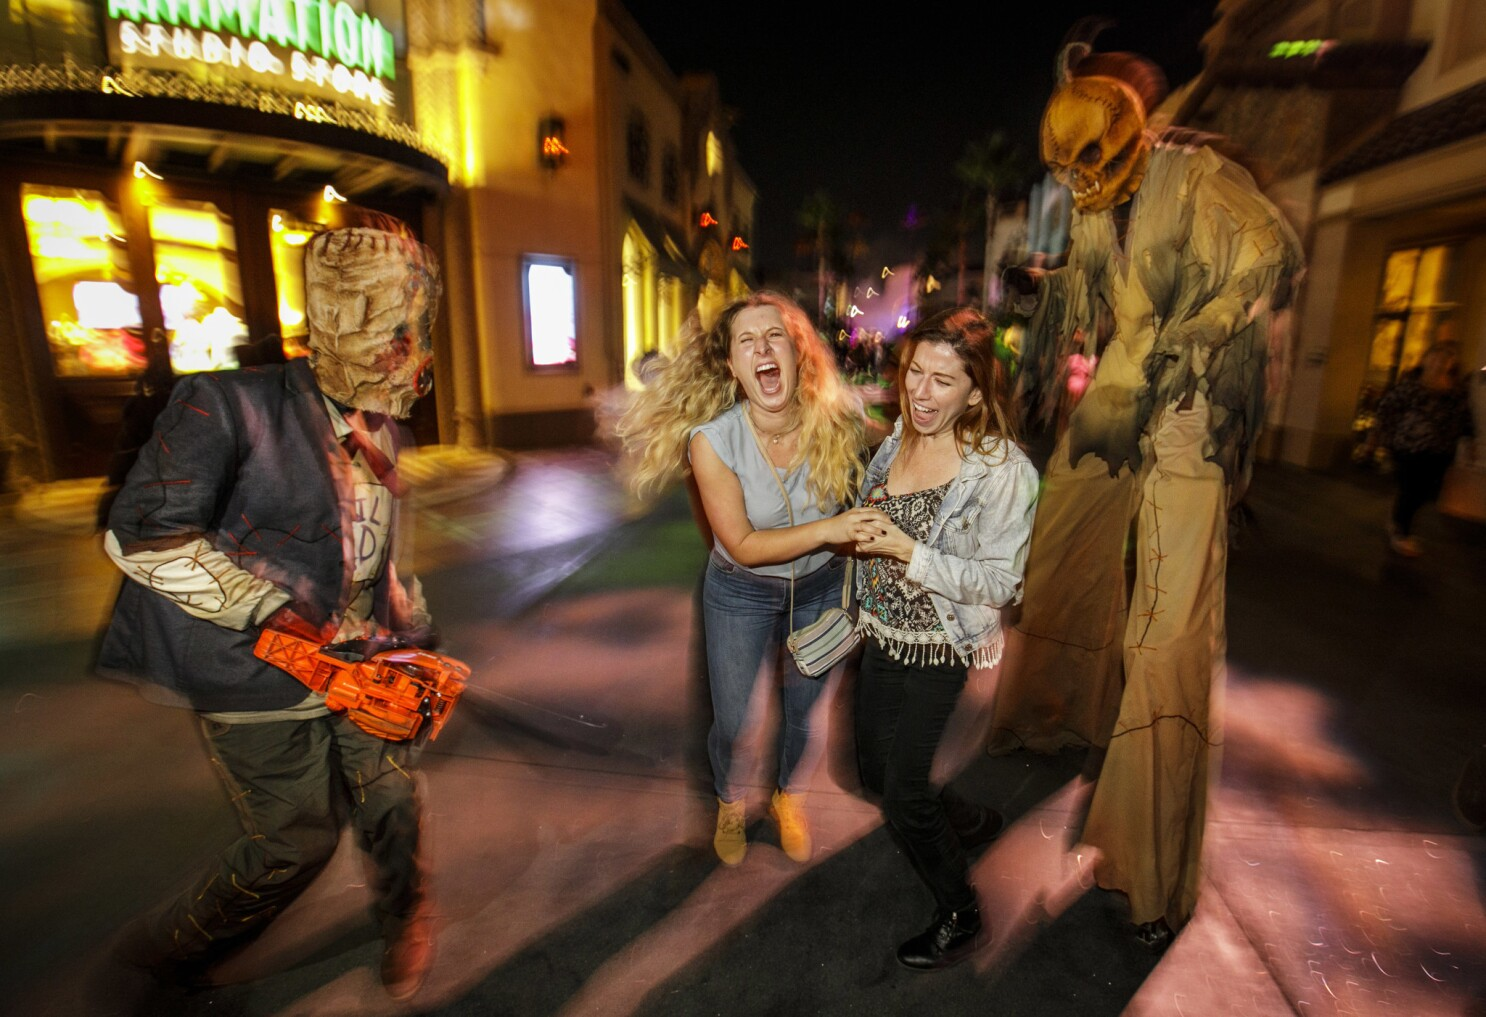 Halloween Shows La 2020 Halloween canceled? COVID 19 threatens theme parks, costumers